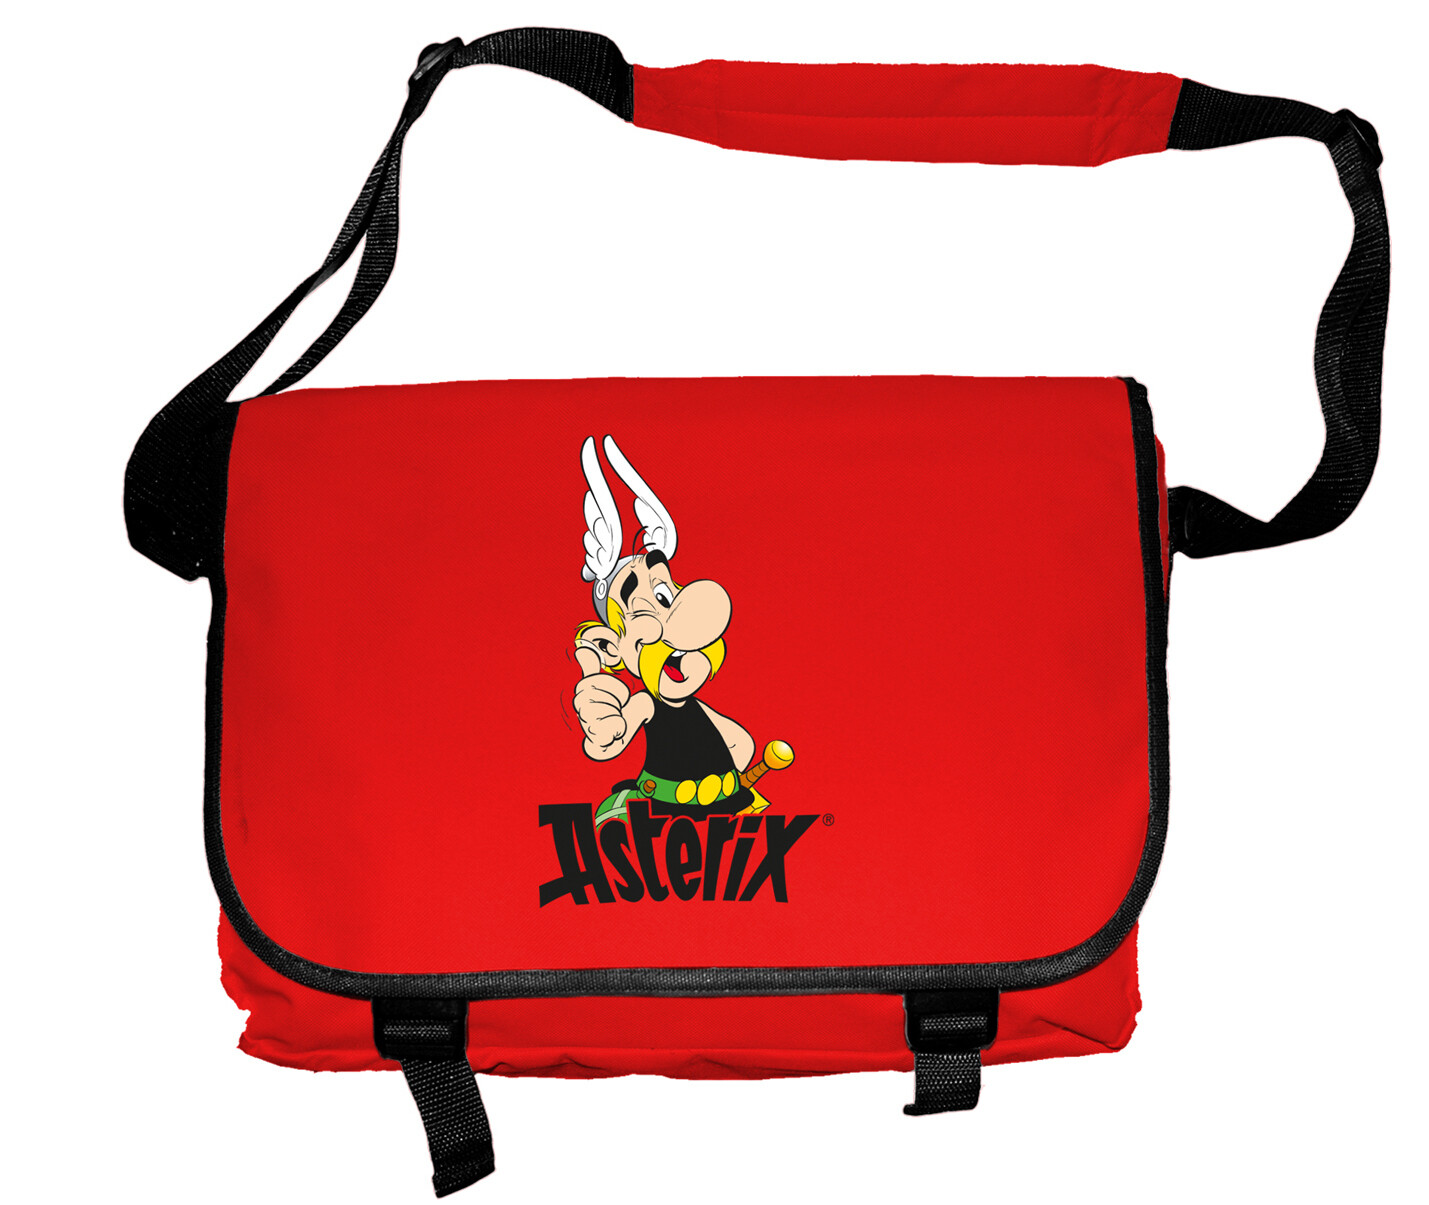 Asterix 'Thumbs Up' Courier Bag